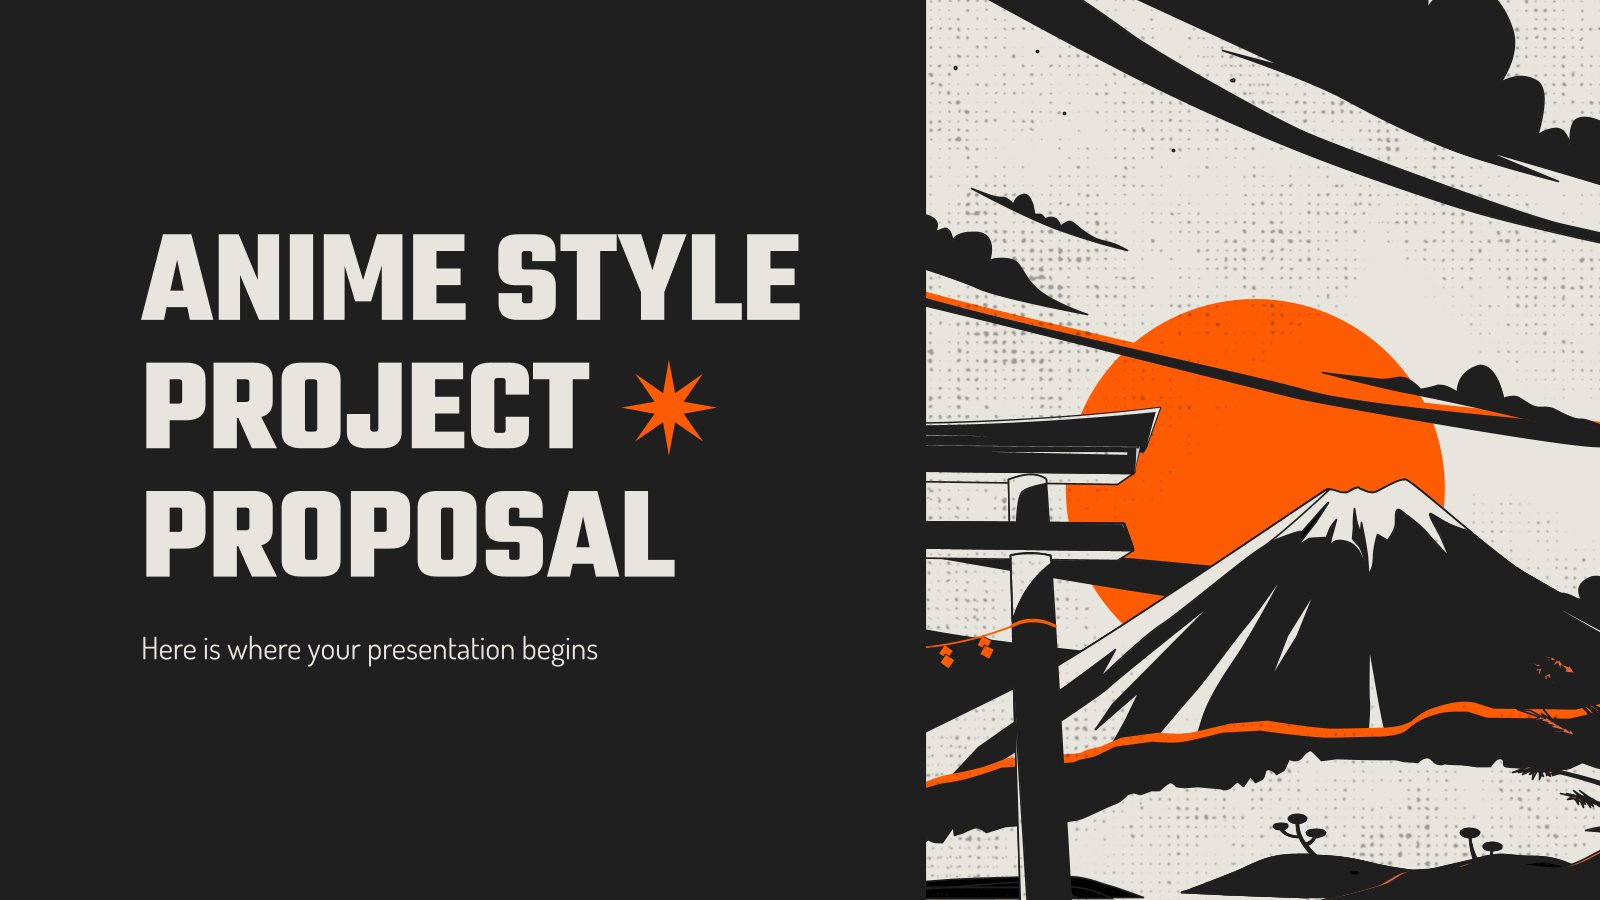 Anime Style Project Proposal presentation template